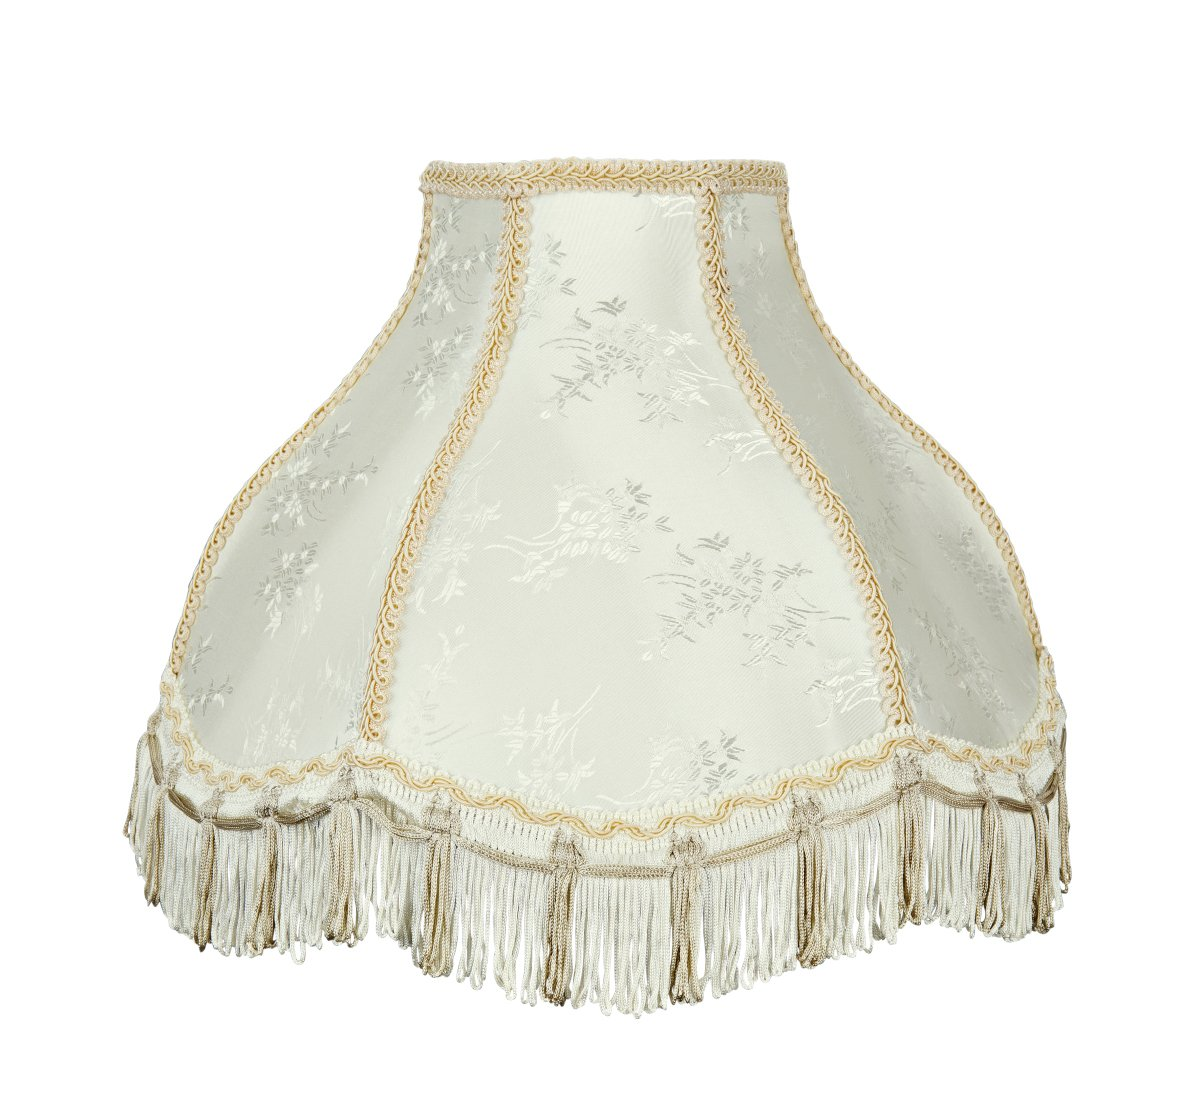 Aspen Creative 30331 Transitional Scallop Bell Shape Spider Construction Ivory, 13'' Wide (5'' x 13'' x 9 1/2'') Lamp Shade